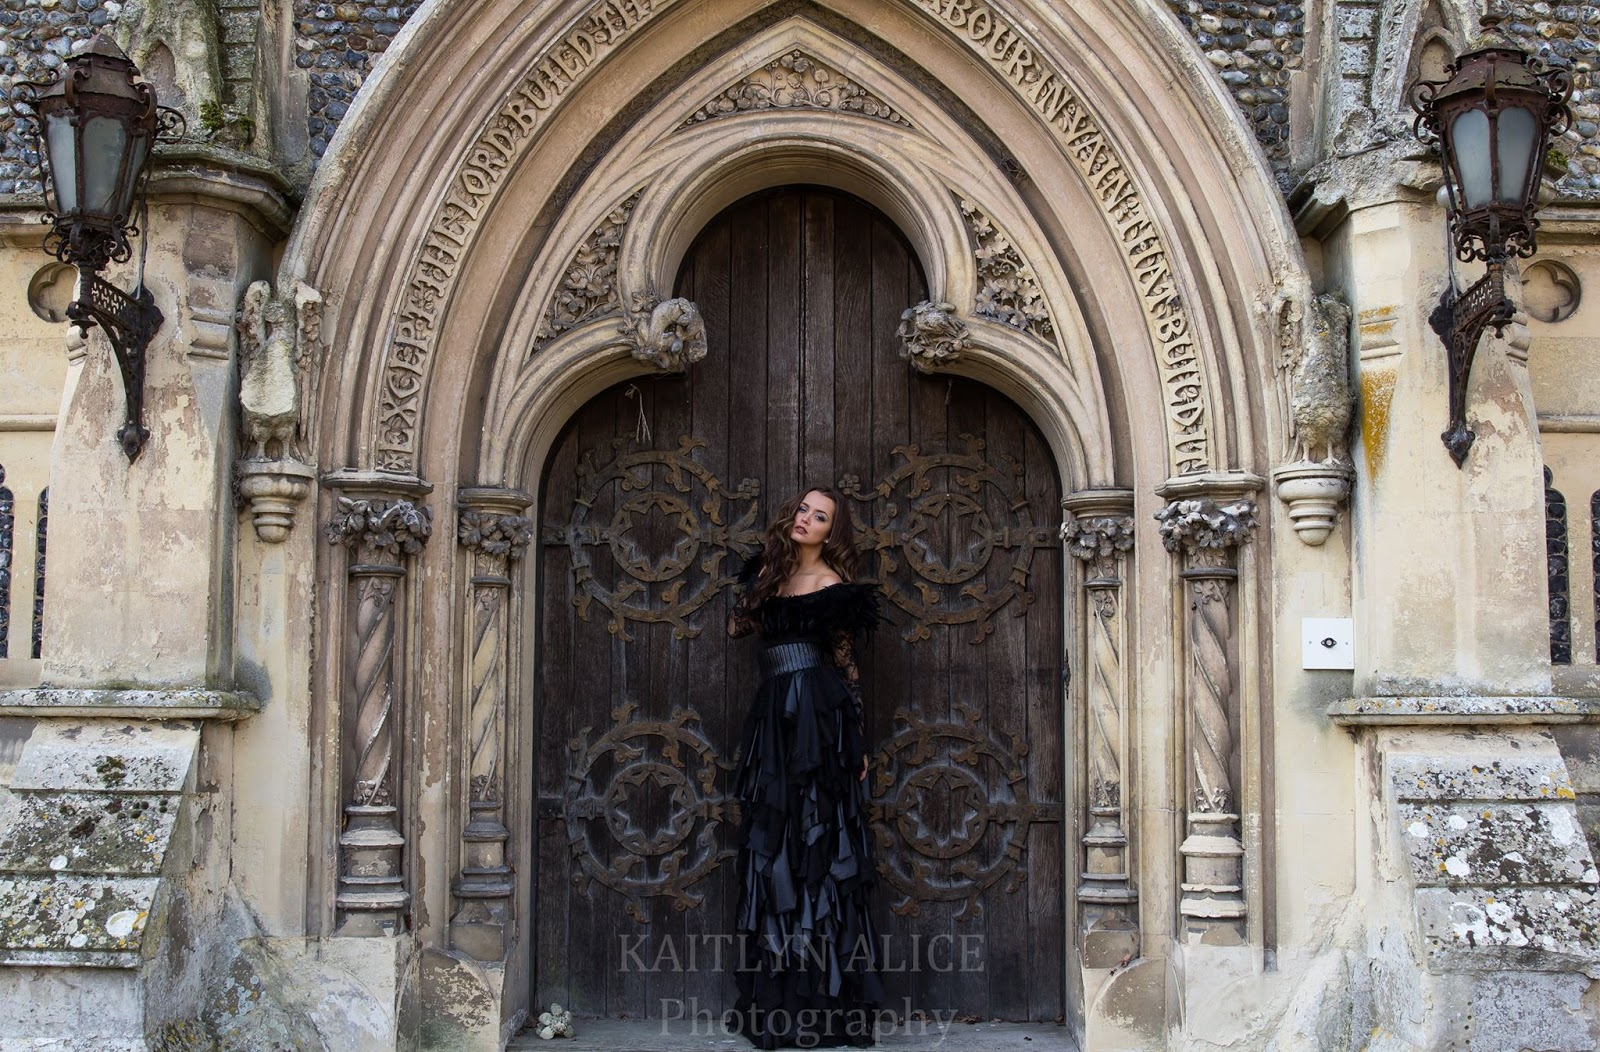 Mystic Magic, fashion shoot, photography, photo, fashion, black dress, feather dress, gothic photography, couture fashion, gothic, raven dress, creative fashion, photo shoot, beauty,